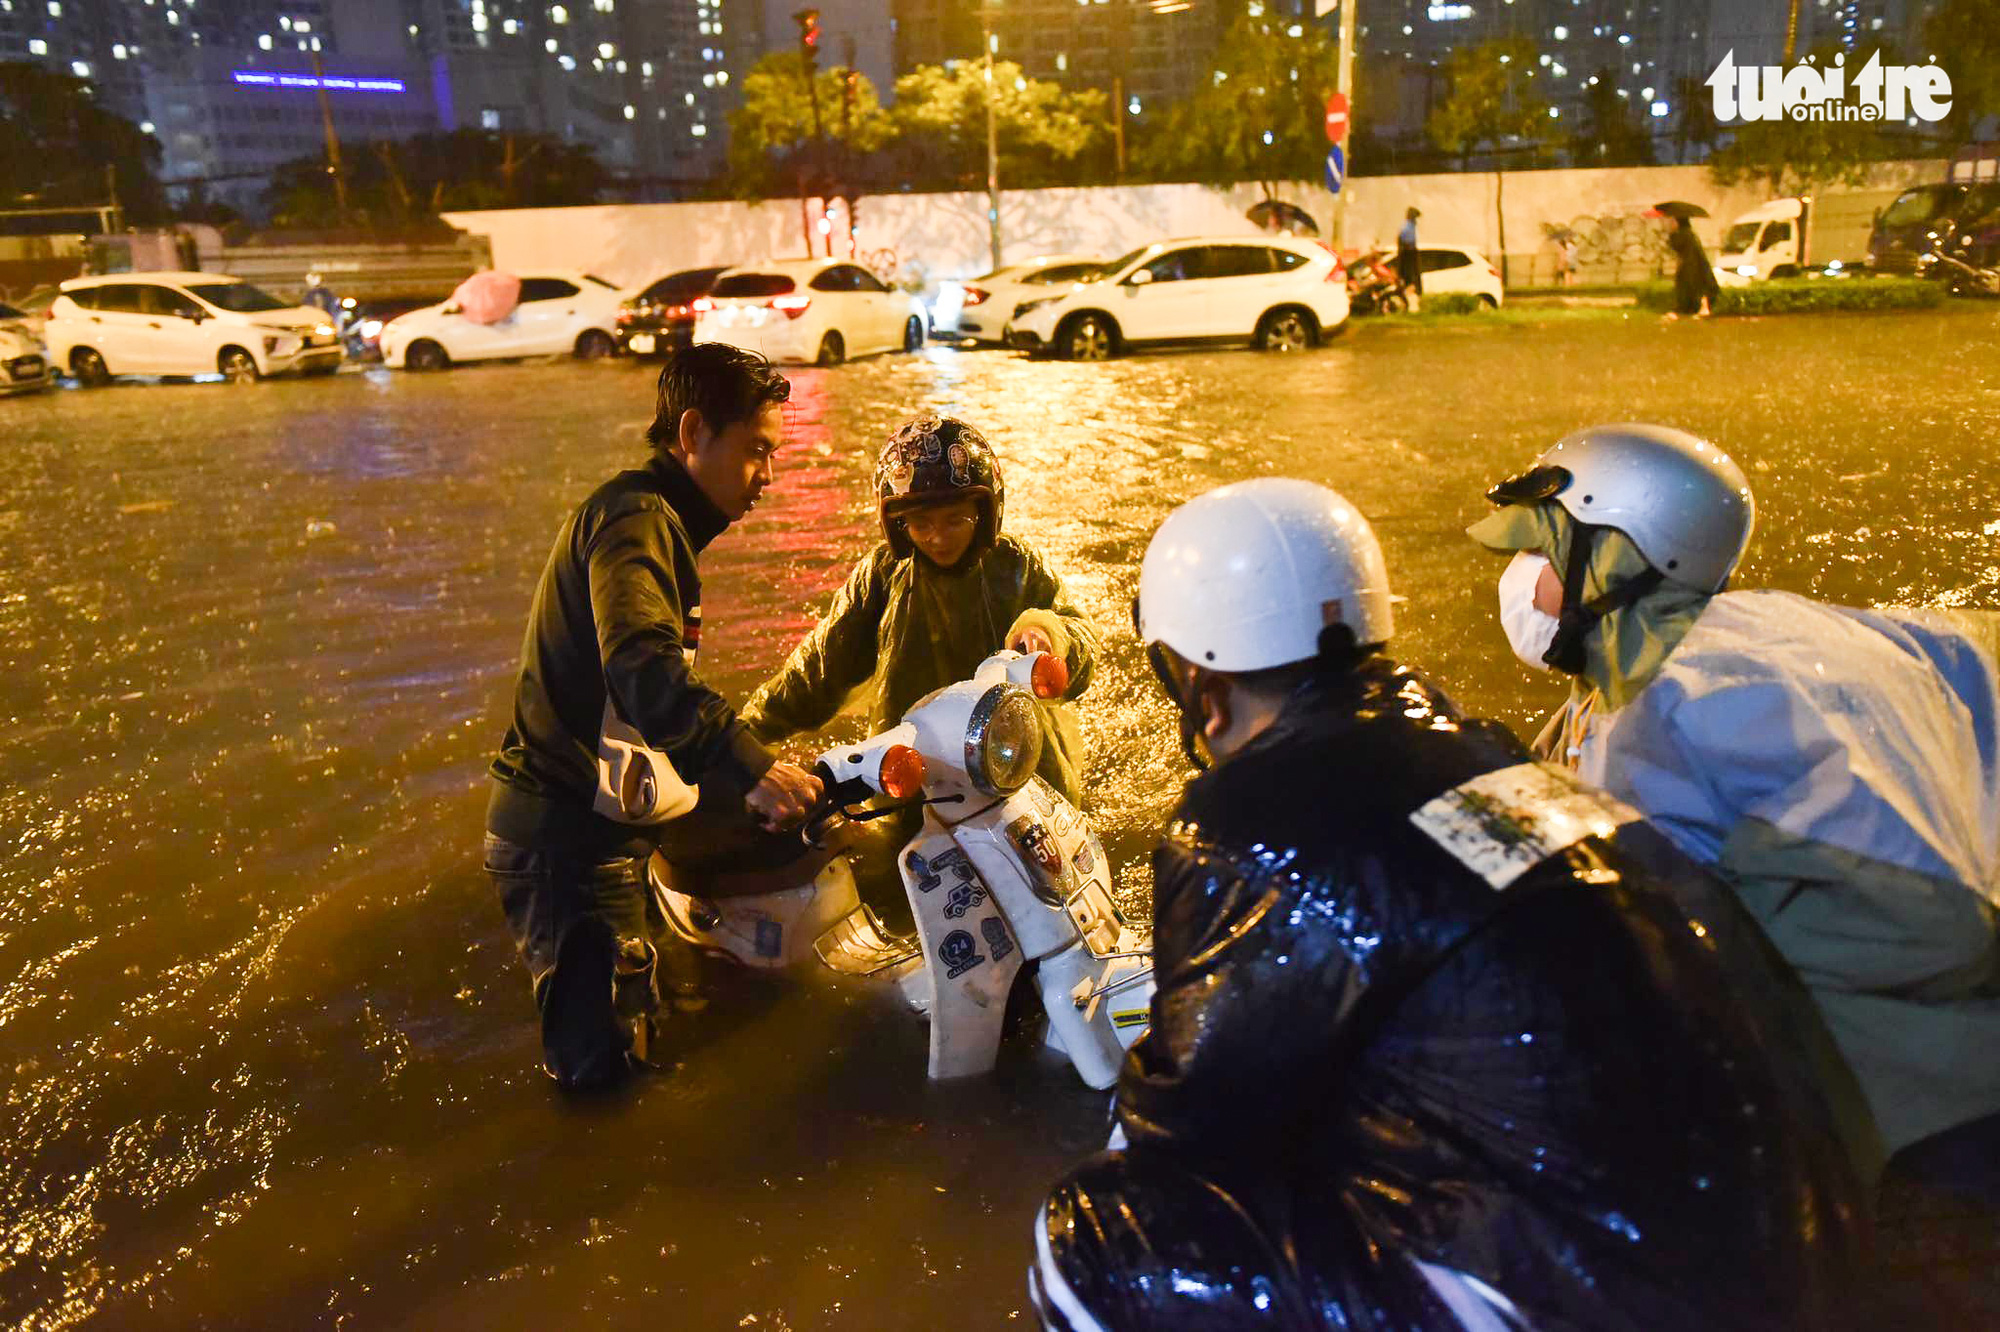 A motorbike breaks down after traveling on a heavily flooded road in Ho Chi Minh City, August 6, 2020. Photo: Ngoc Phuong / Tuoi Tre